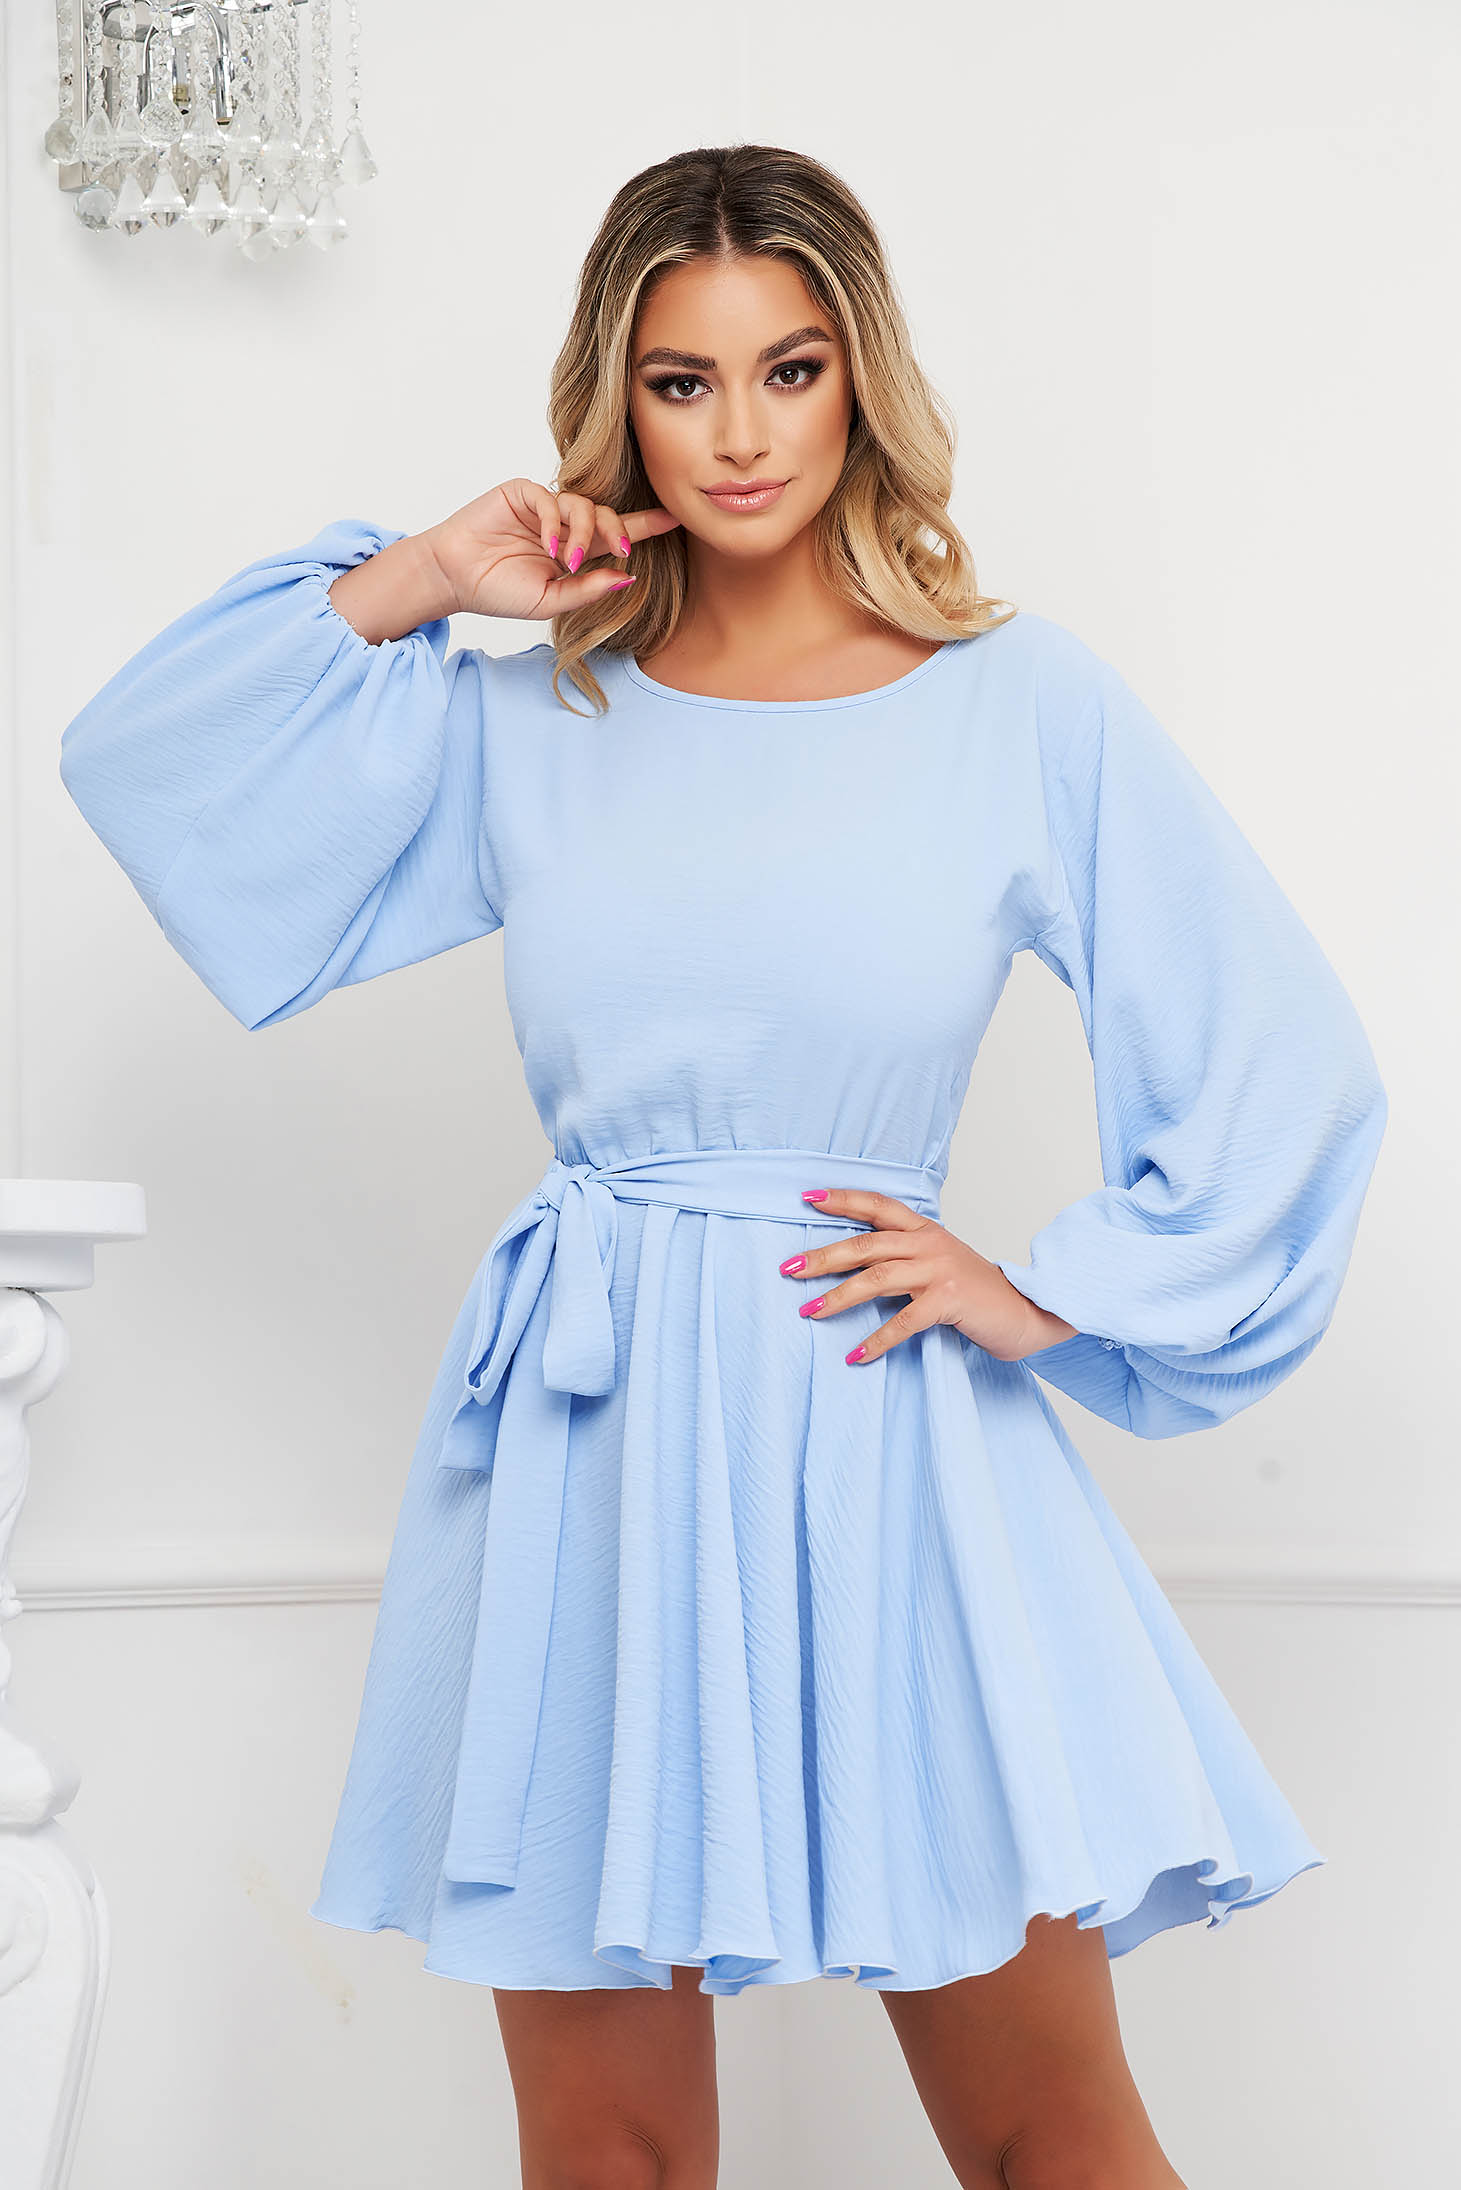 StarShinerS dress lightblue cloche with elastic waist from elastic fabric with puffed sleeves